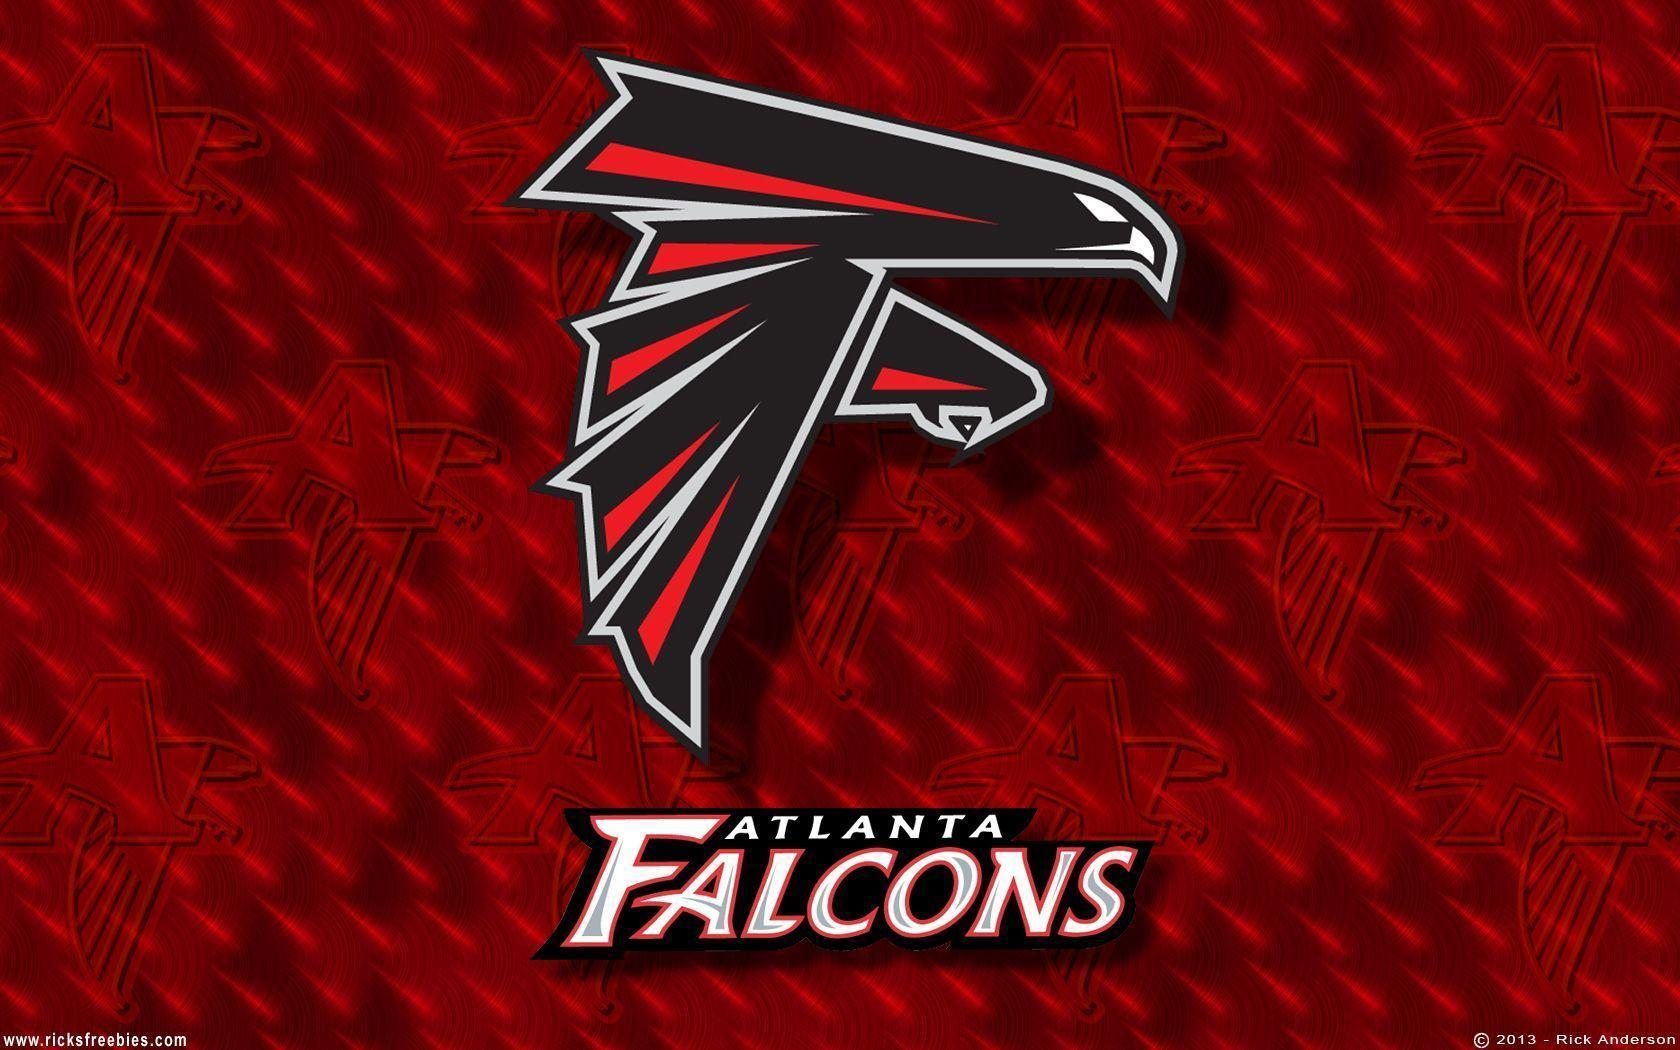 Atlanta Falcons Wallpapers.